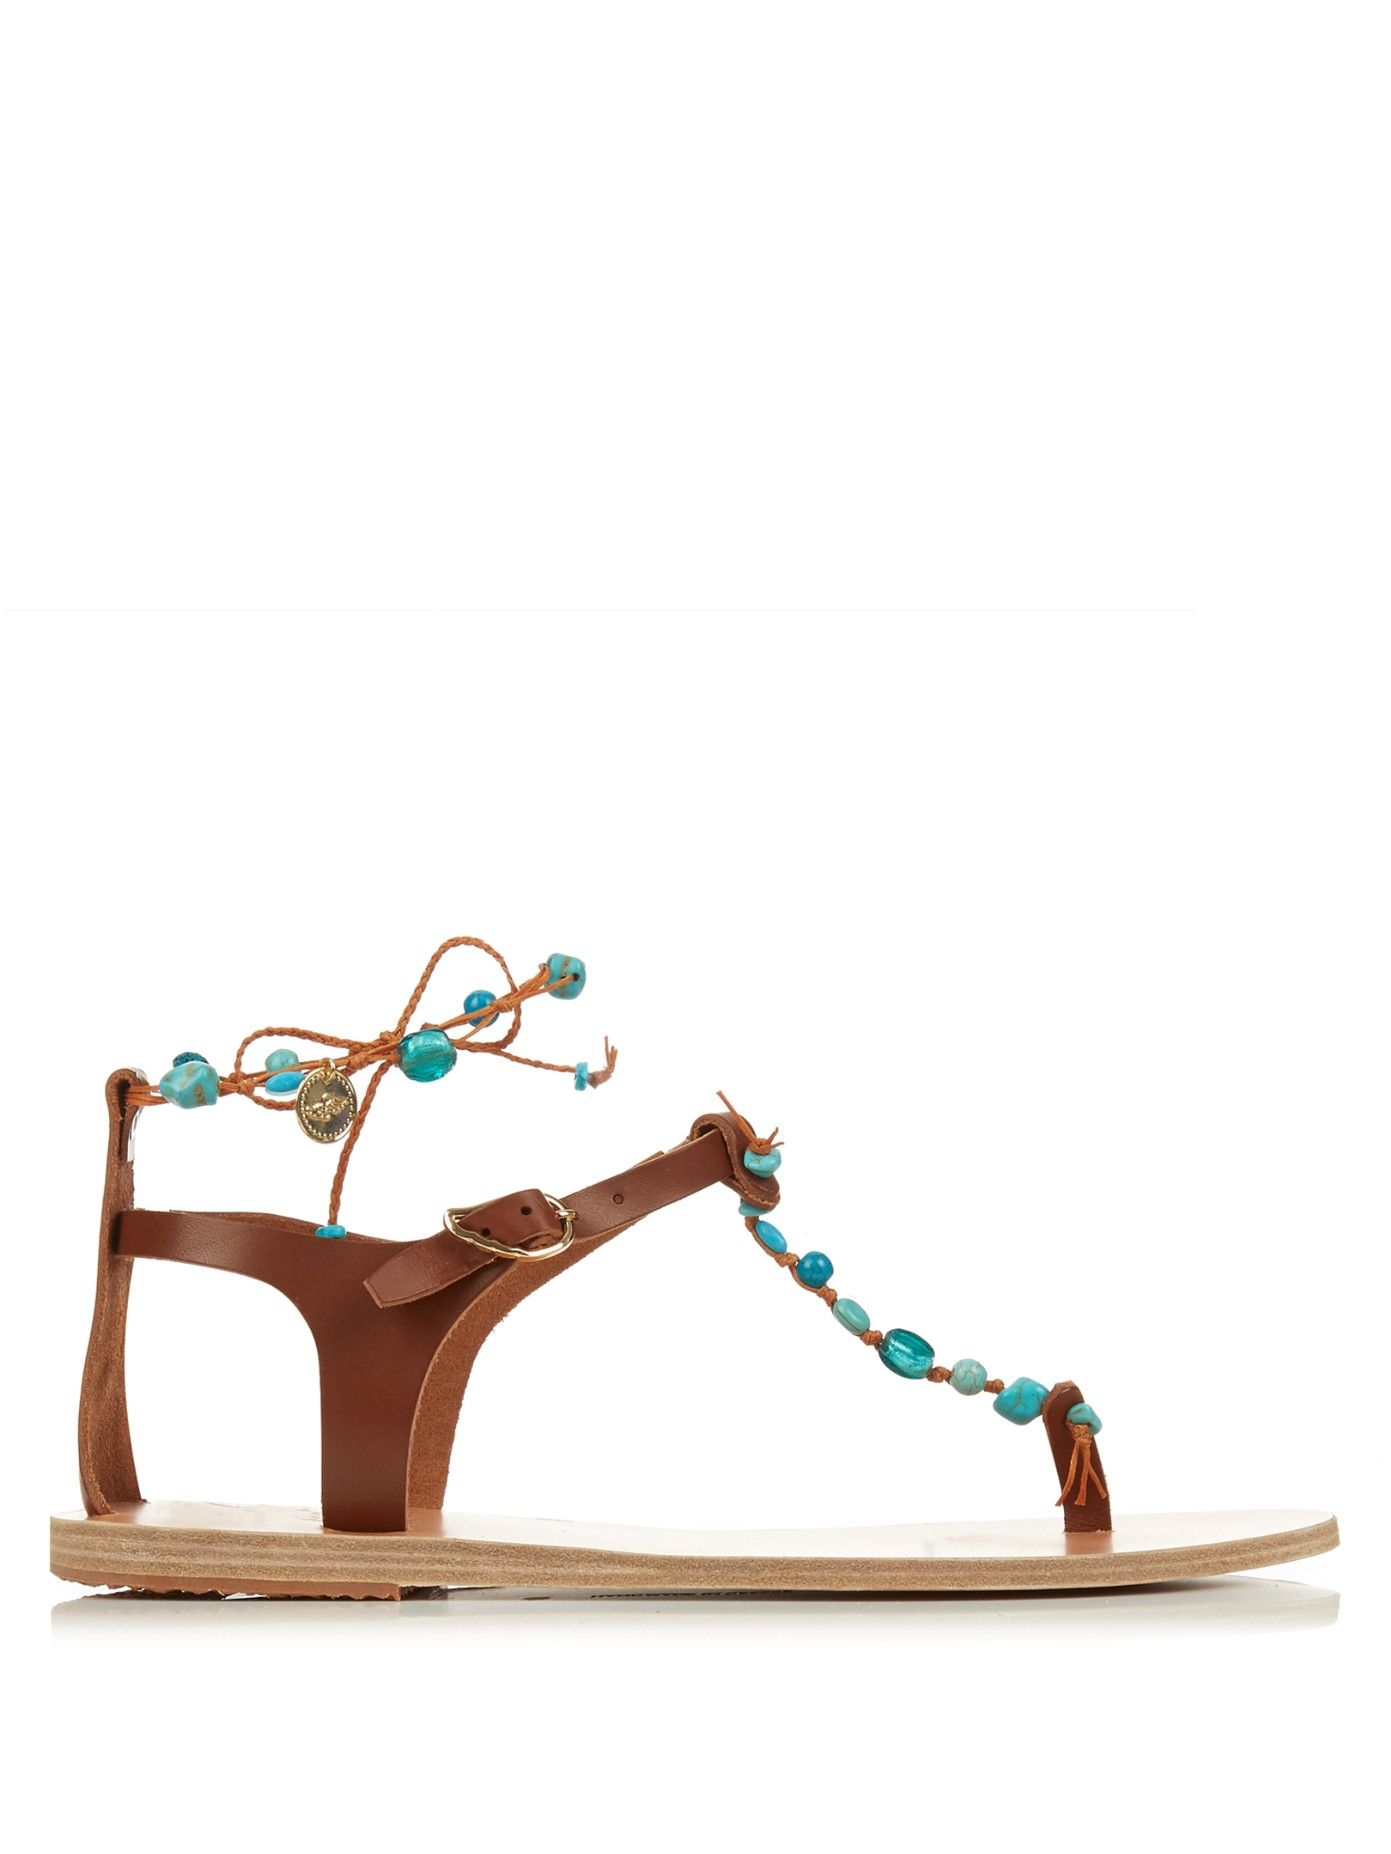 12673ab6a316f ... tan-brown leather Chrysso sandals are ornately embellished with  turquoise stones for a bohemian feel. Handmade in Greece